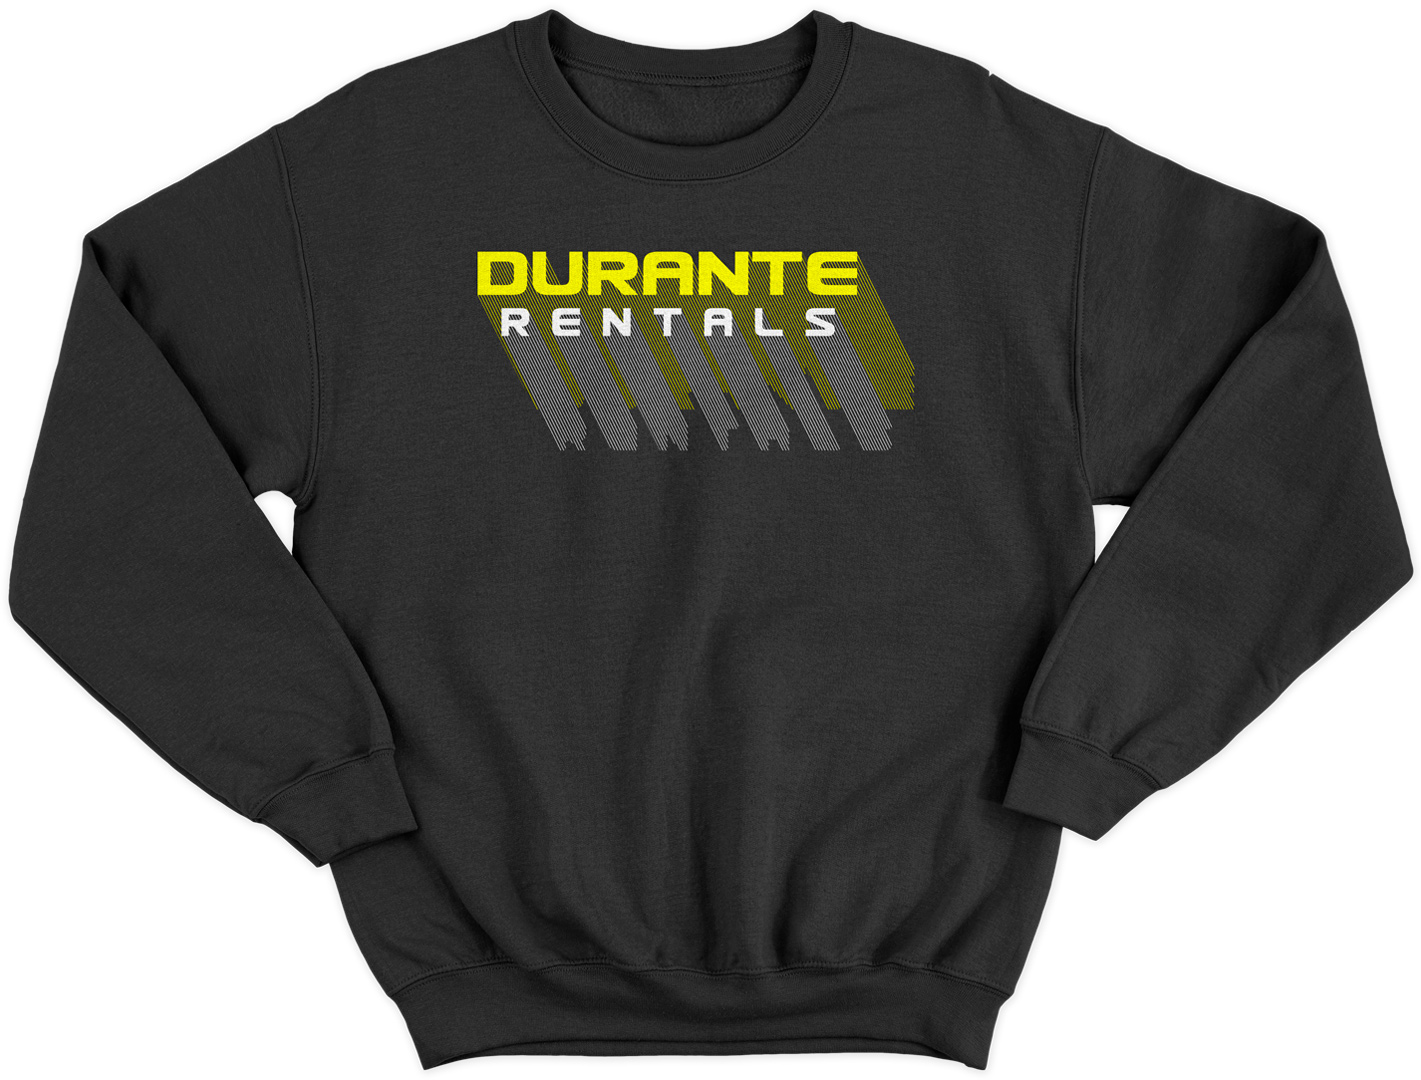 Retro logo crew neck sweatshirt design